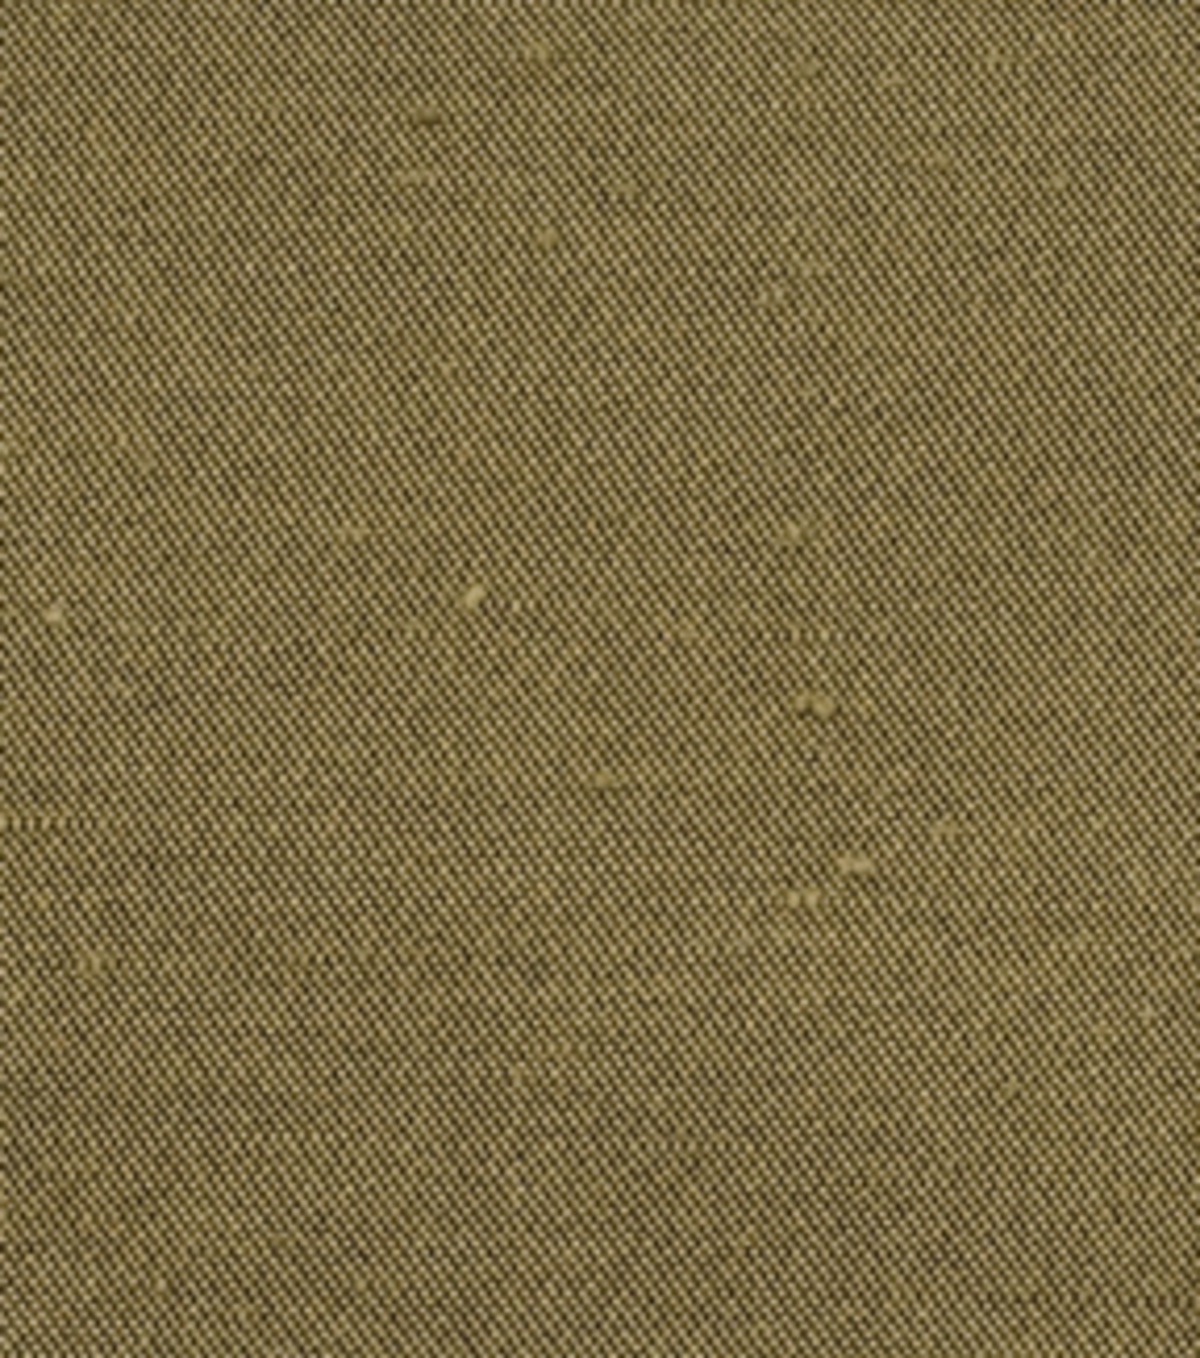 Home Decor 8\u0022x8\u0022 Fabric Swatch-Signature Series Antique Satin Seaweed